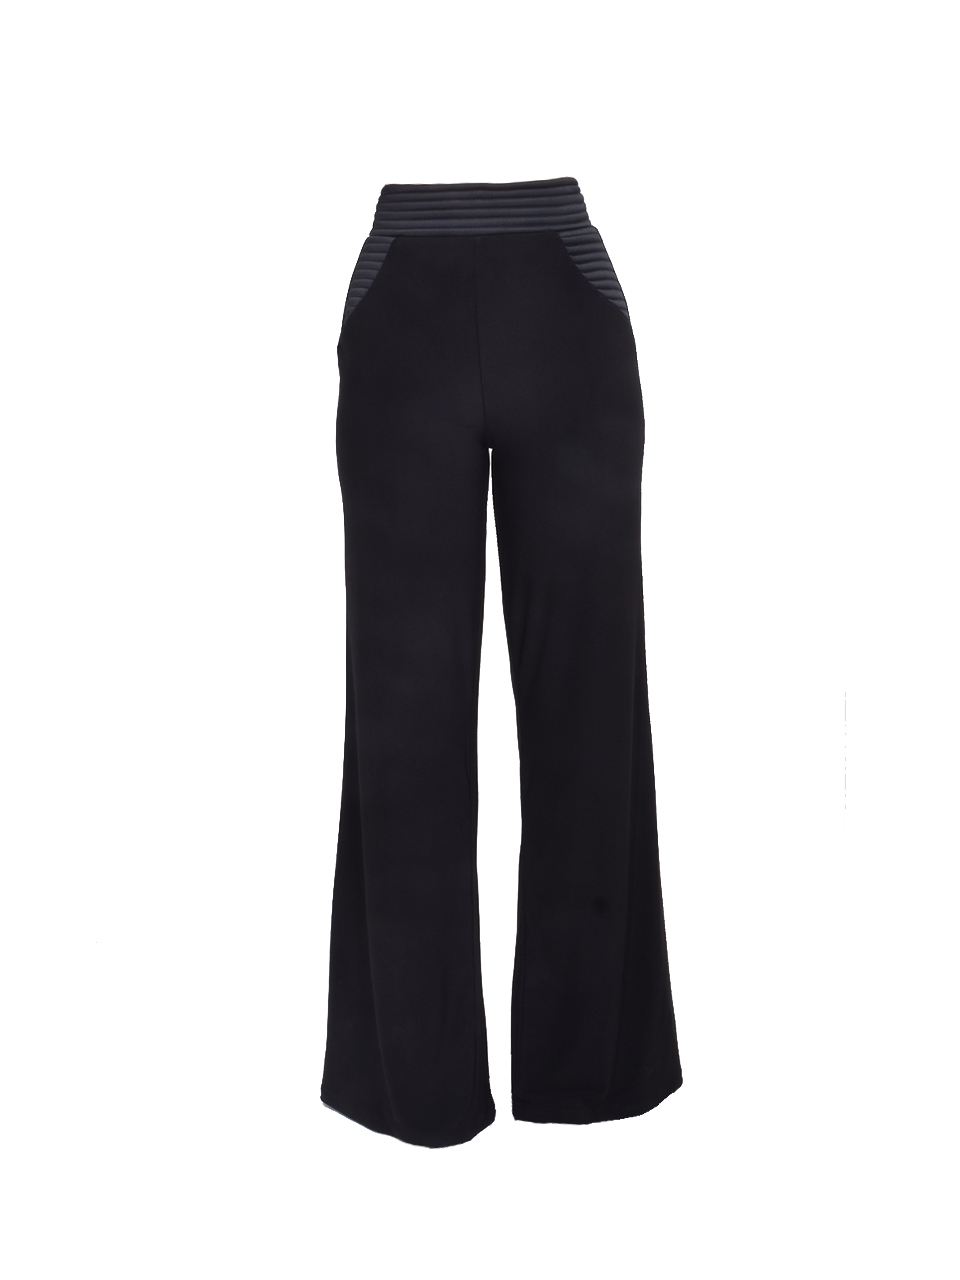 Zhivago Ready Wide Leg Pant in Black Product Shot